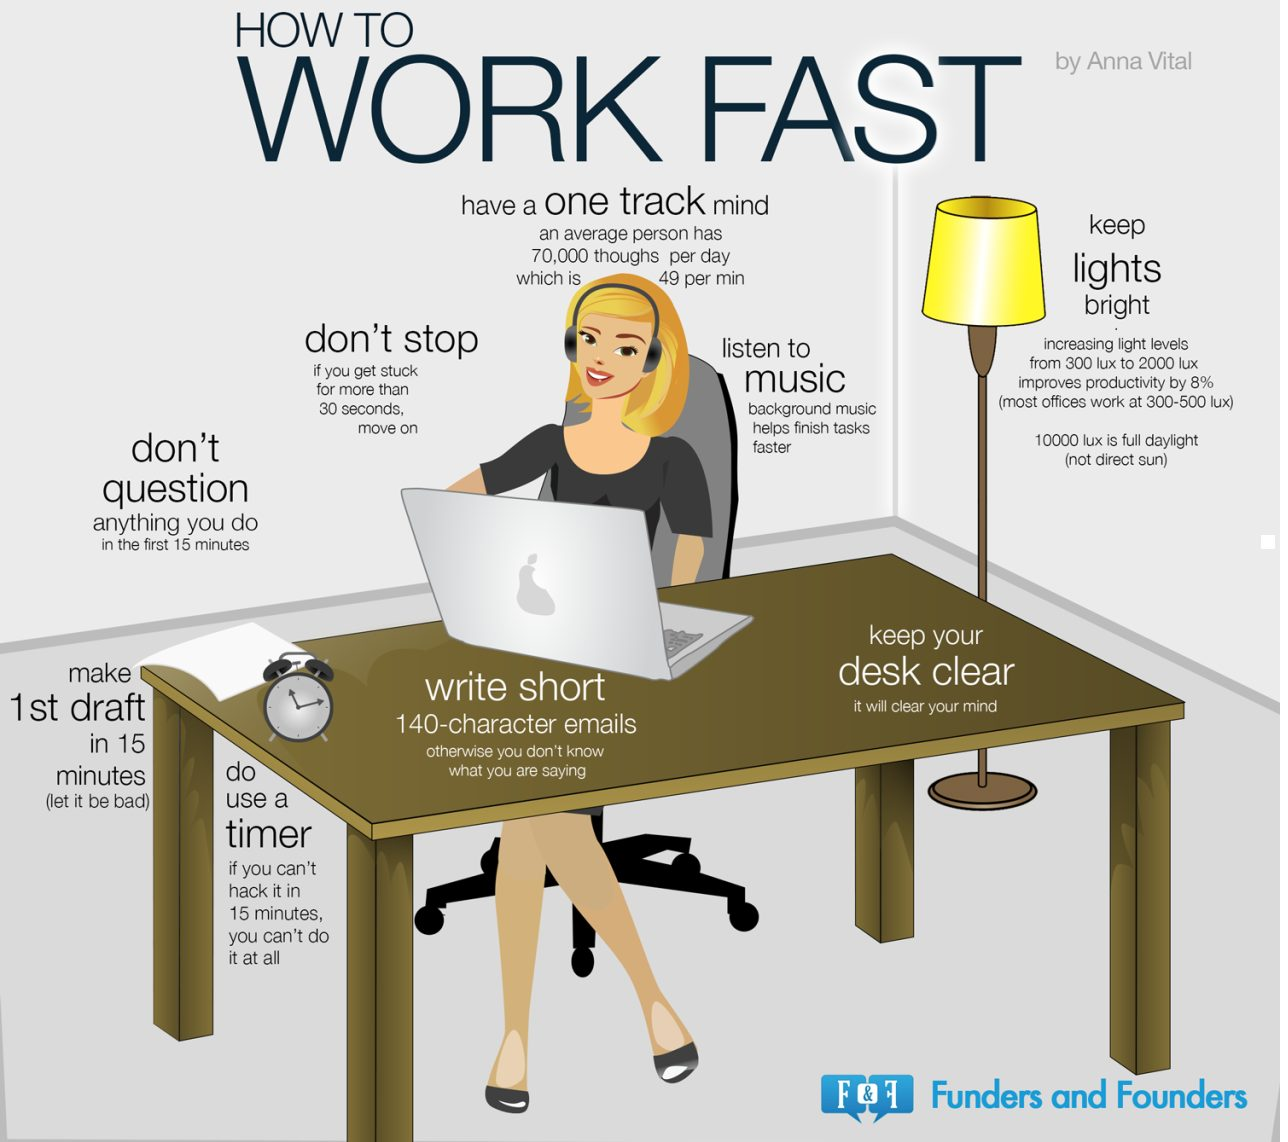 Image: How to work fast by Ana Vital